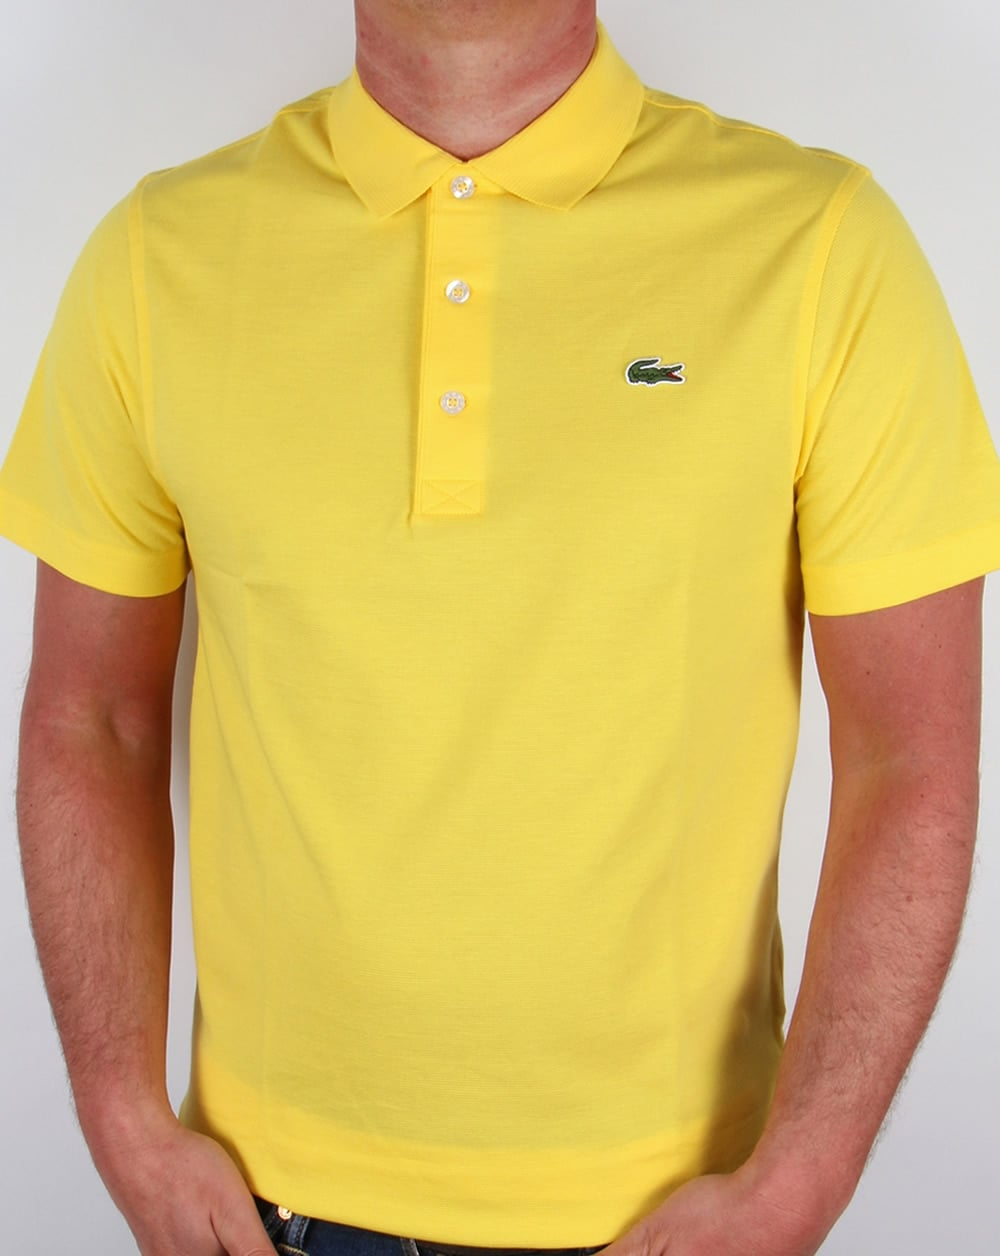 Lacoste polo shirt yellow short sleeve retro old skool - Lacoste poloshirt weiay ...